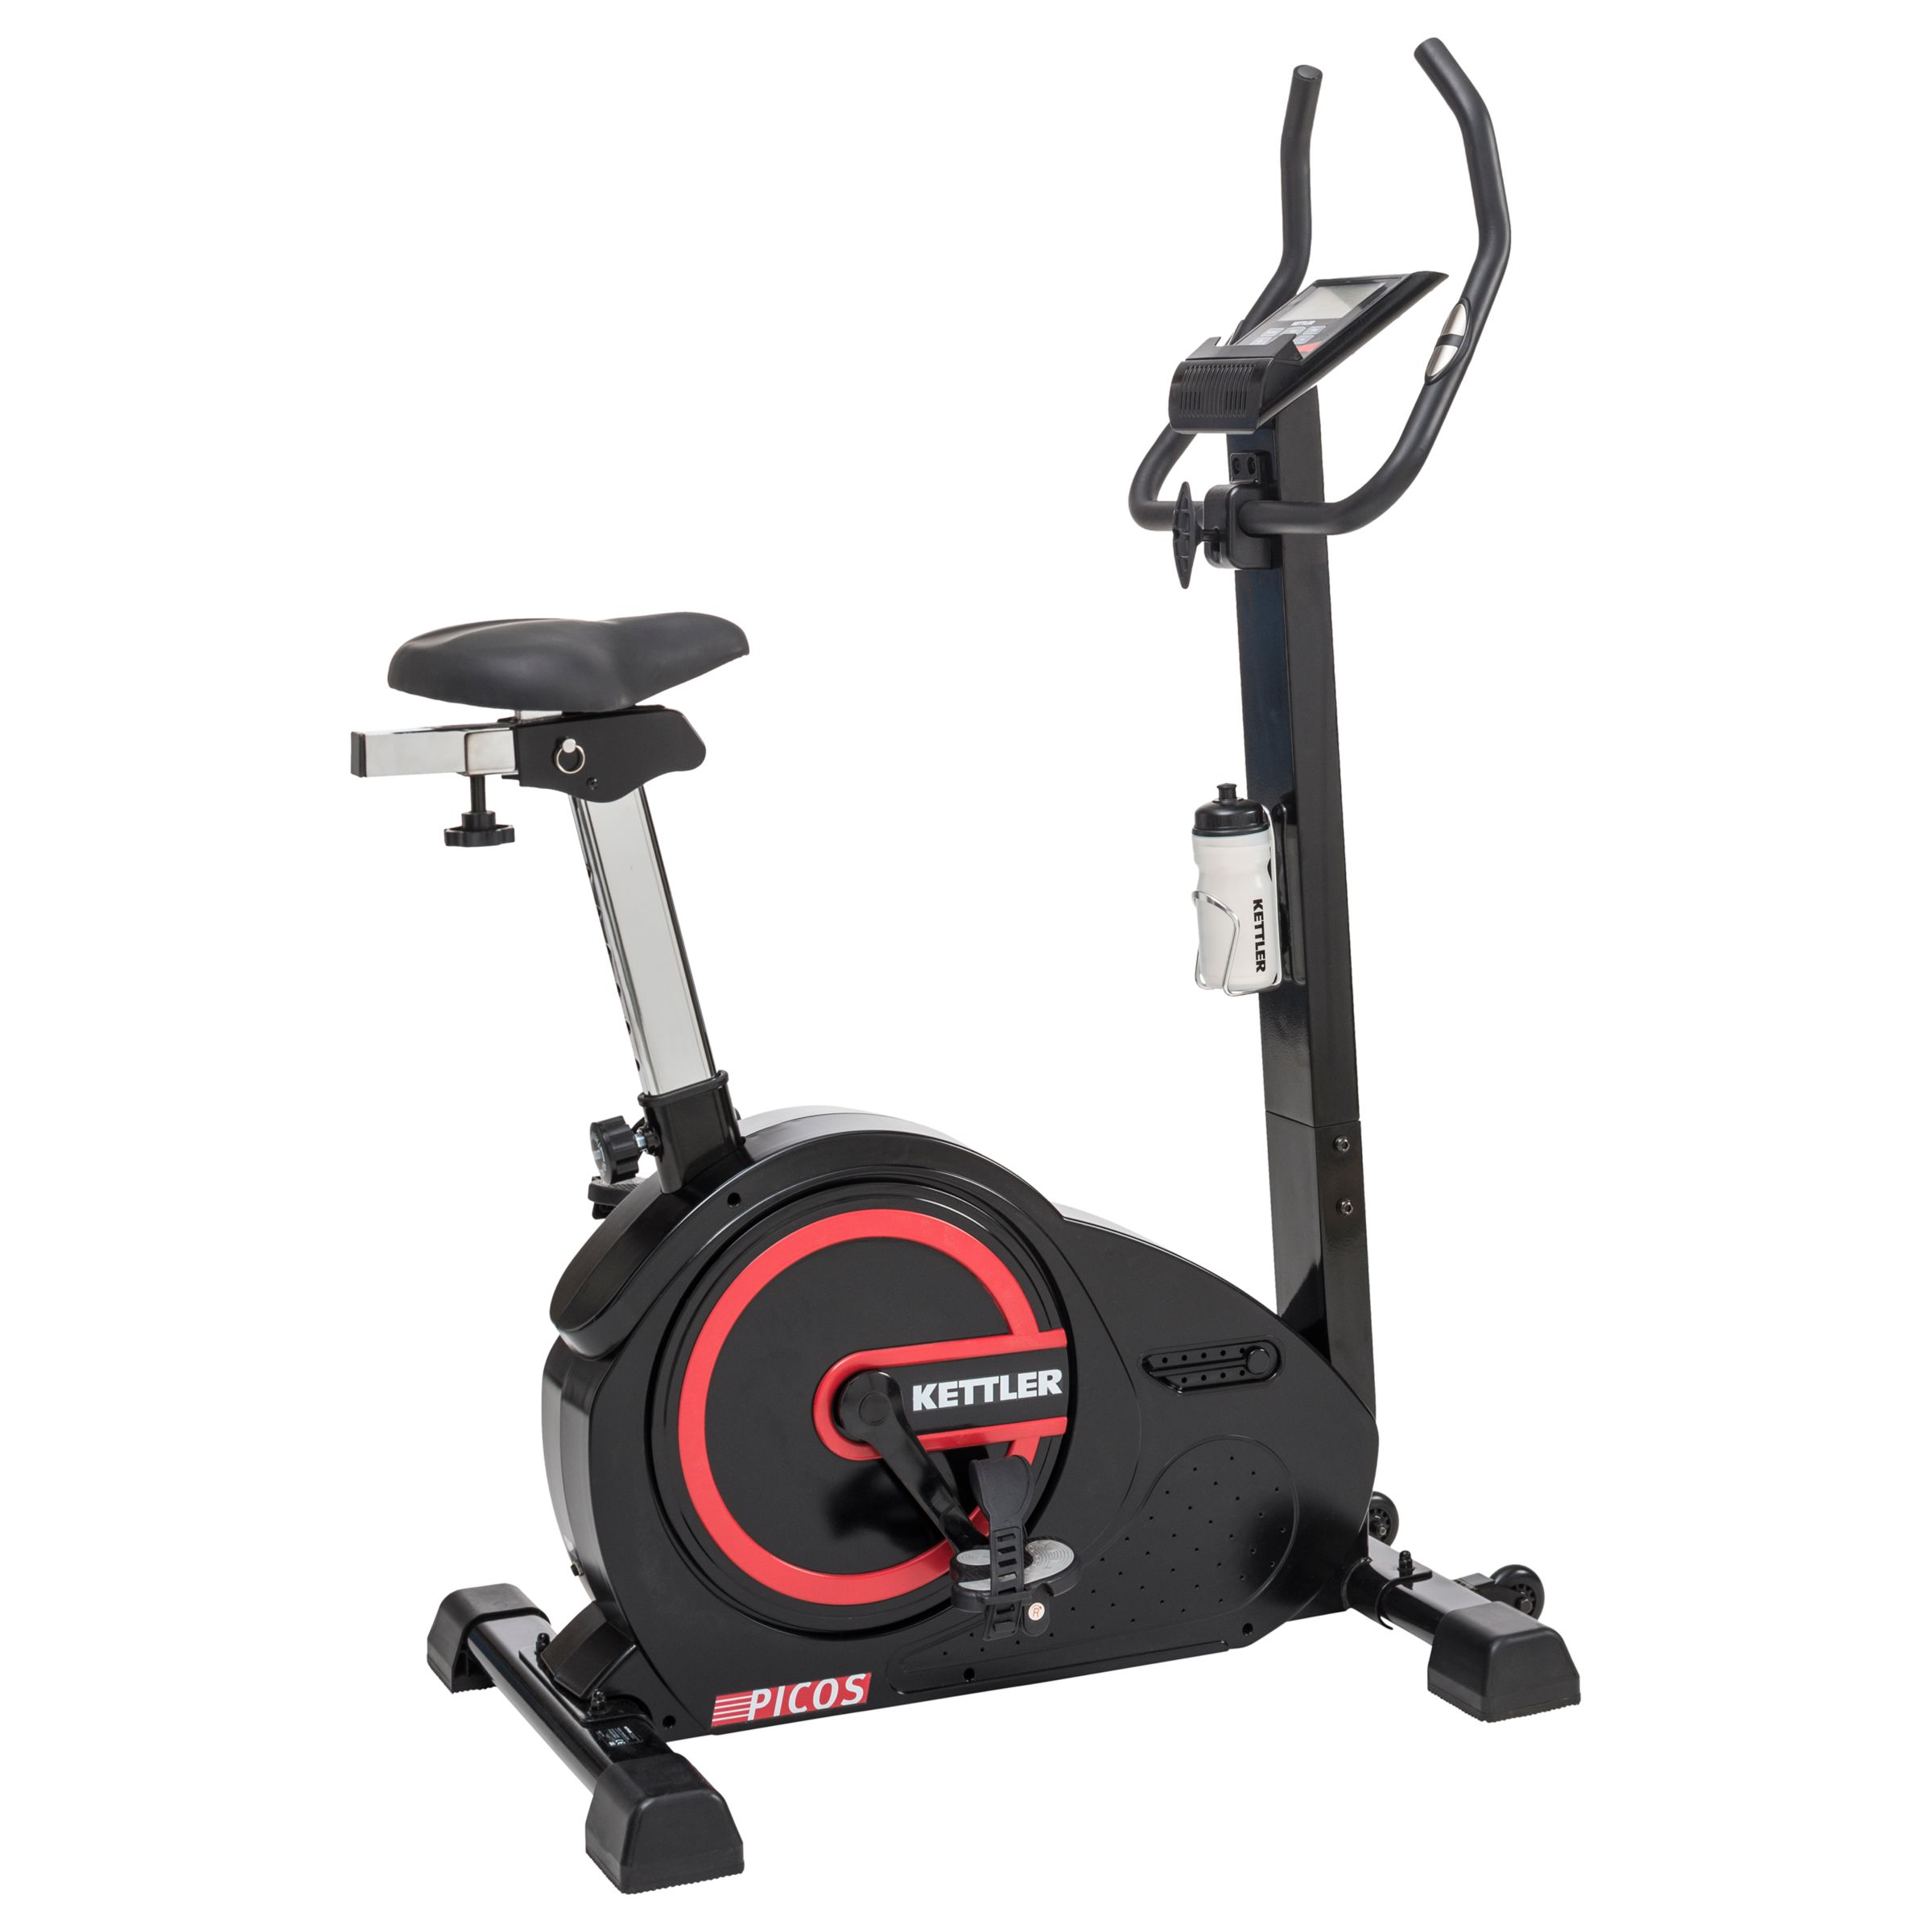 KETTLER Sport KETTLER Sport Picos Exercise Bike, Black/Red